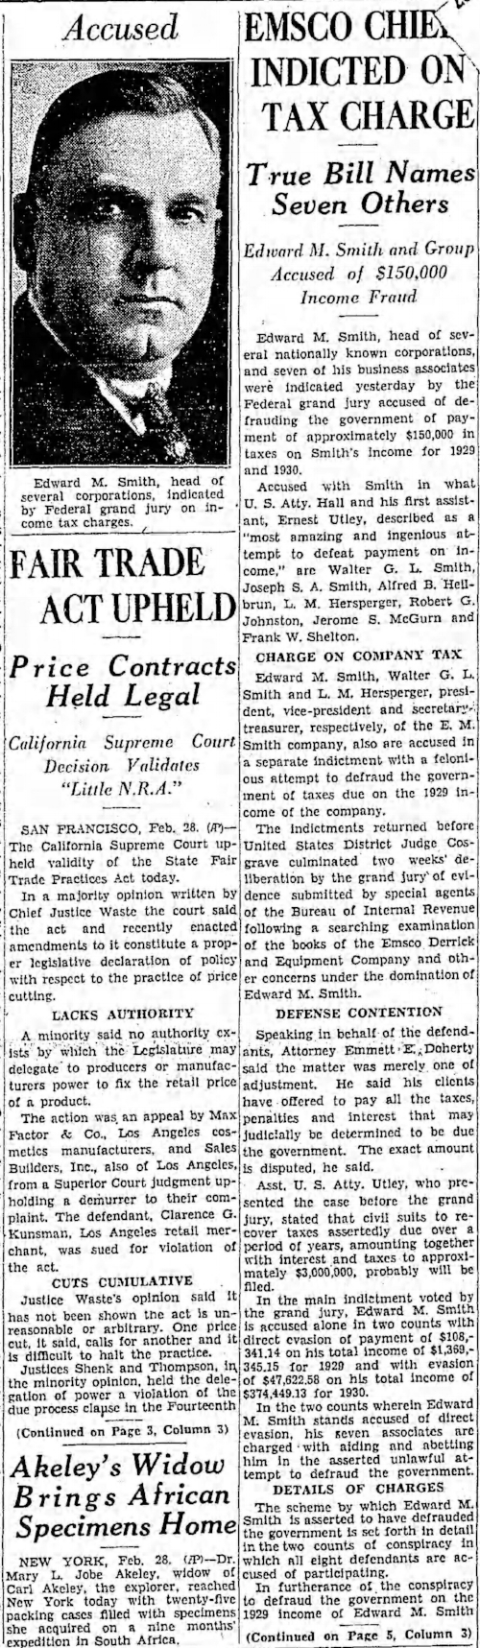 The Los Angeles Times - Saturday Feb. 29 1936- Emsco Chief Indicted